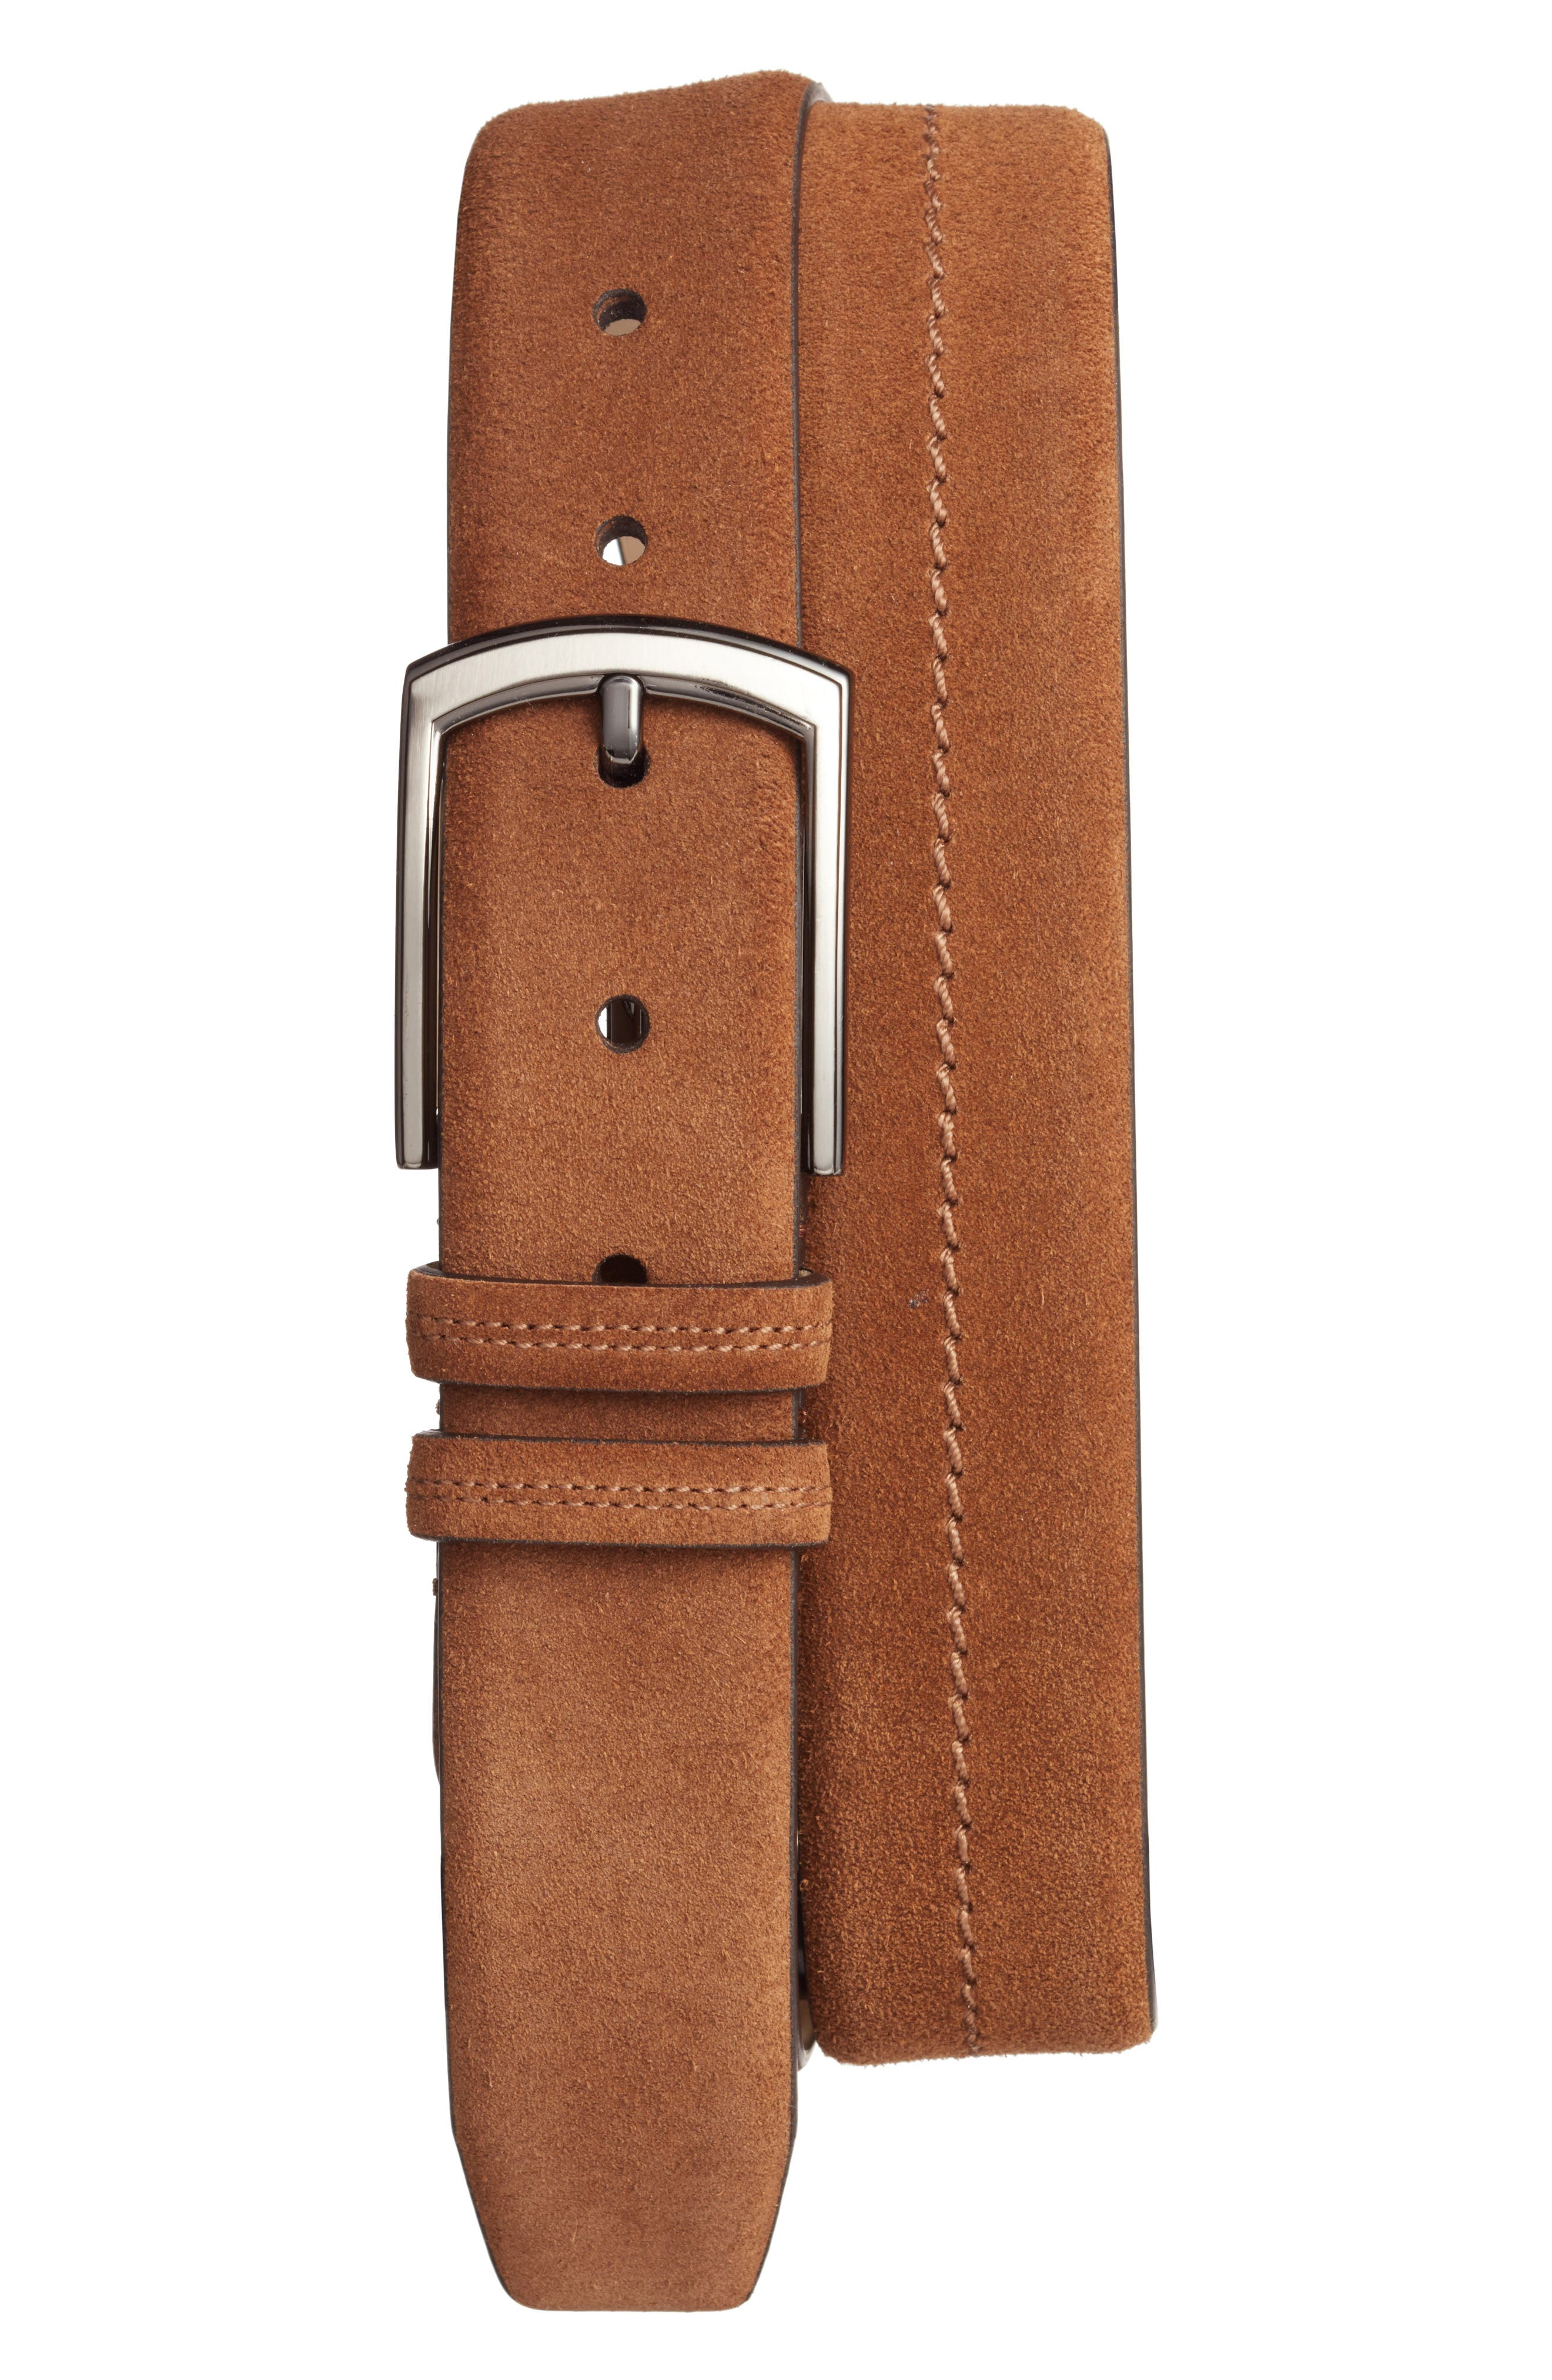 Fuji Suede Belt,                         Main,                         color, Tan